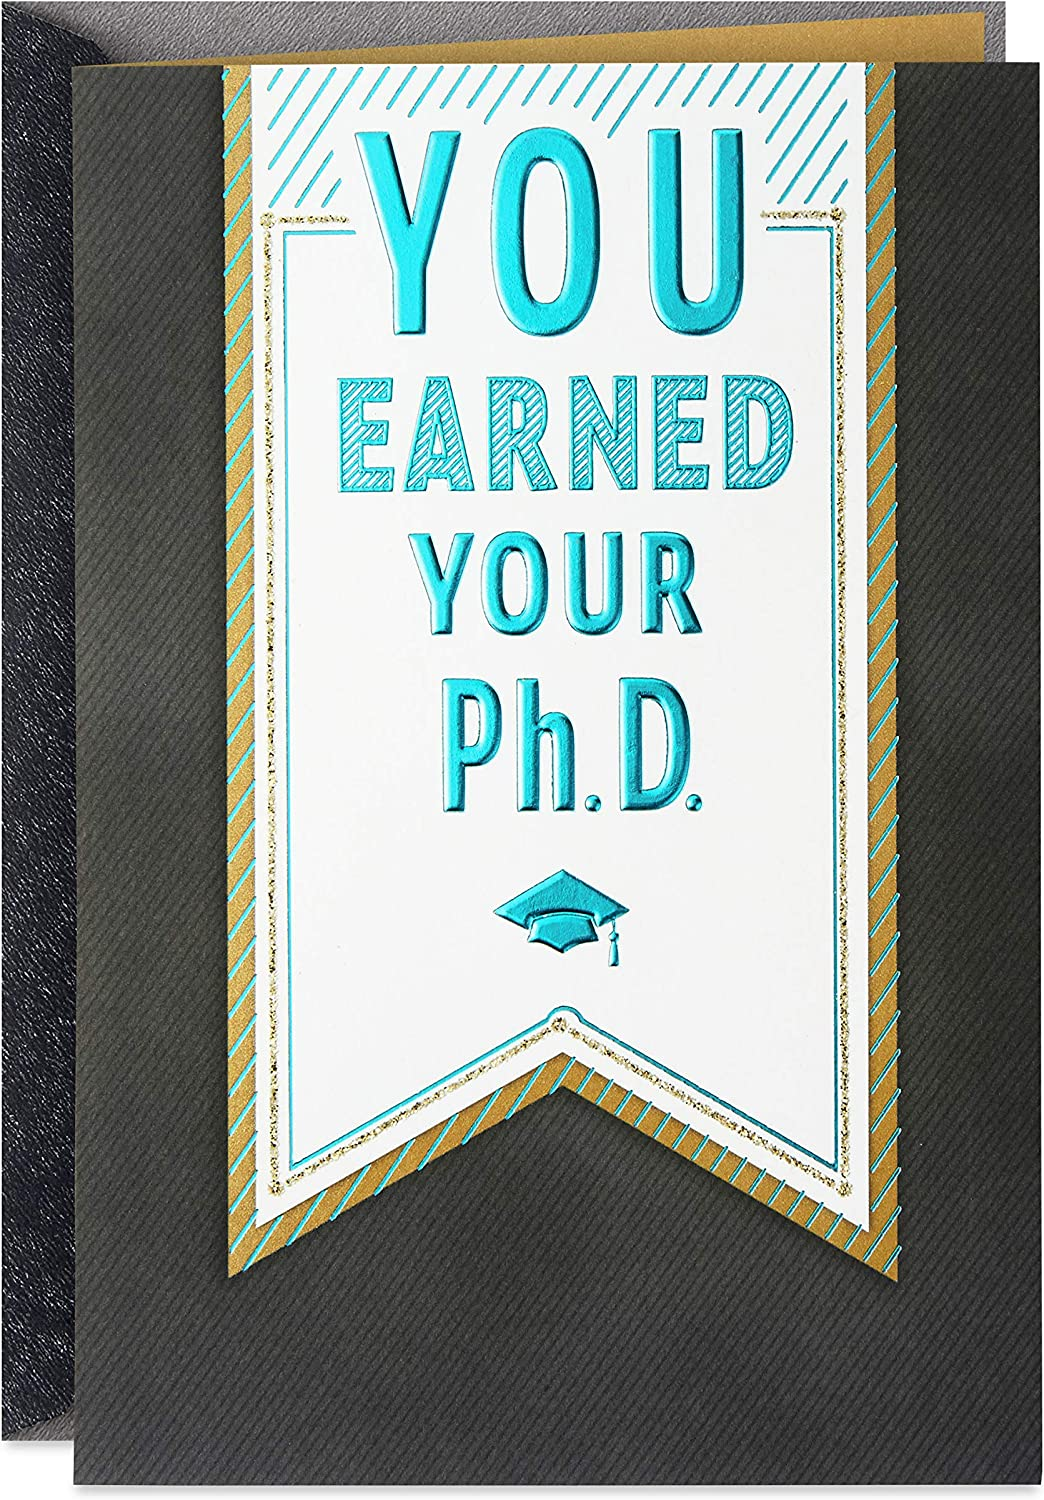 Doctorate Degree,meaningful necklace Doctorate Degree Necklace card Doctorate Masters Degree MBA Doctorate Graduation PhD Graduation Gift